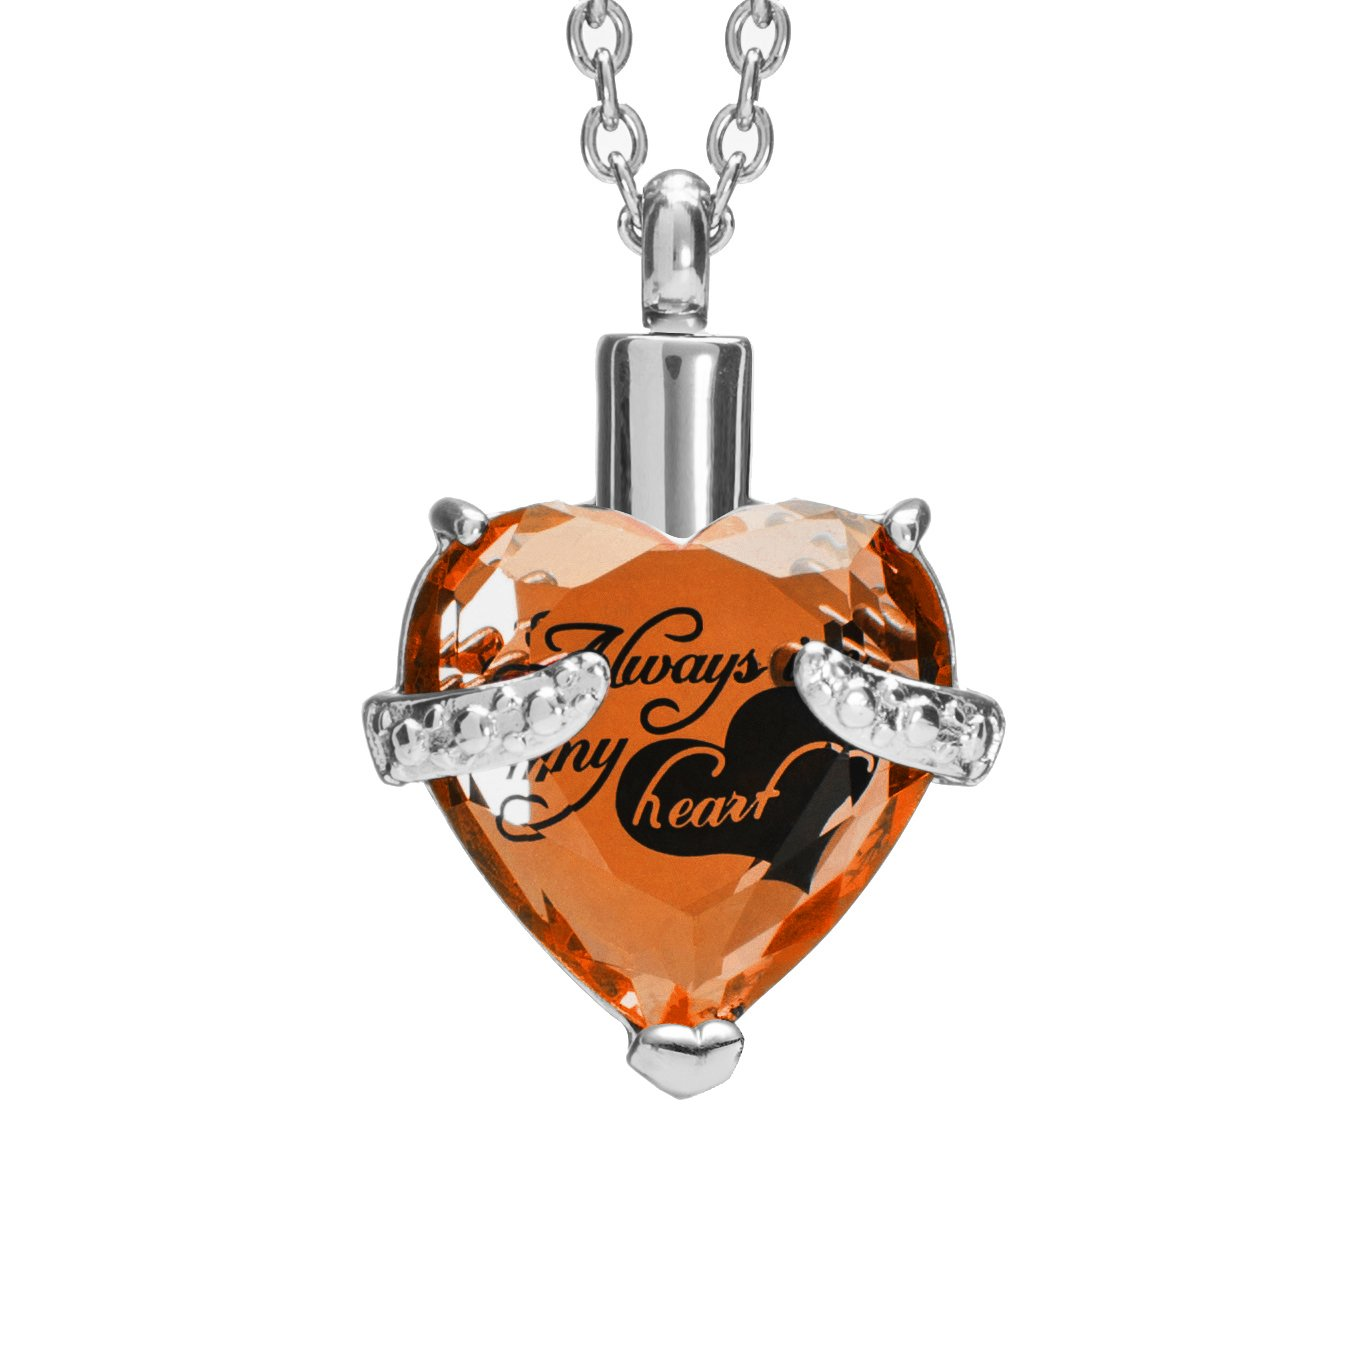 SmartChoice Keepsake Rhinestone Necklace Heart Pendant for Cremation Ashes with Beautiful Presentation Gift Box, Elegant Memorial Jewelry with Stainless Chain and Accessories, (Topaz/November)